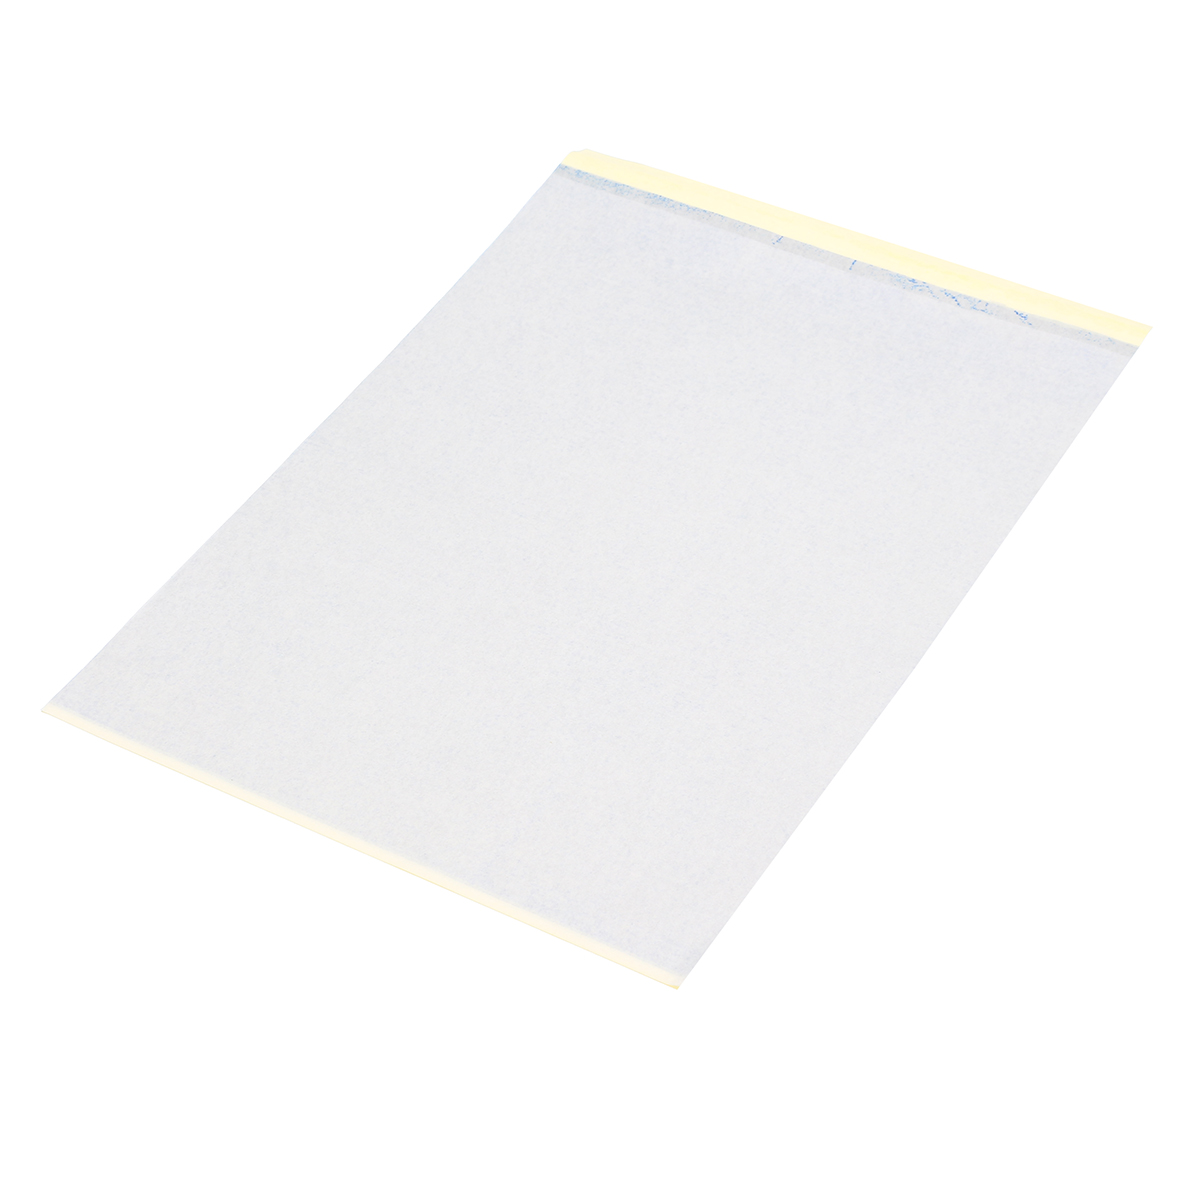 100Pcs A4 Tattoo Spirit Carbon Papers Reusable Thermal Transfer Copier Paper Stencil Kits